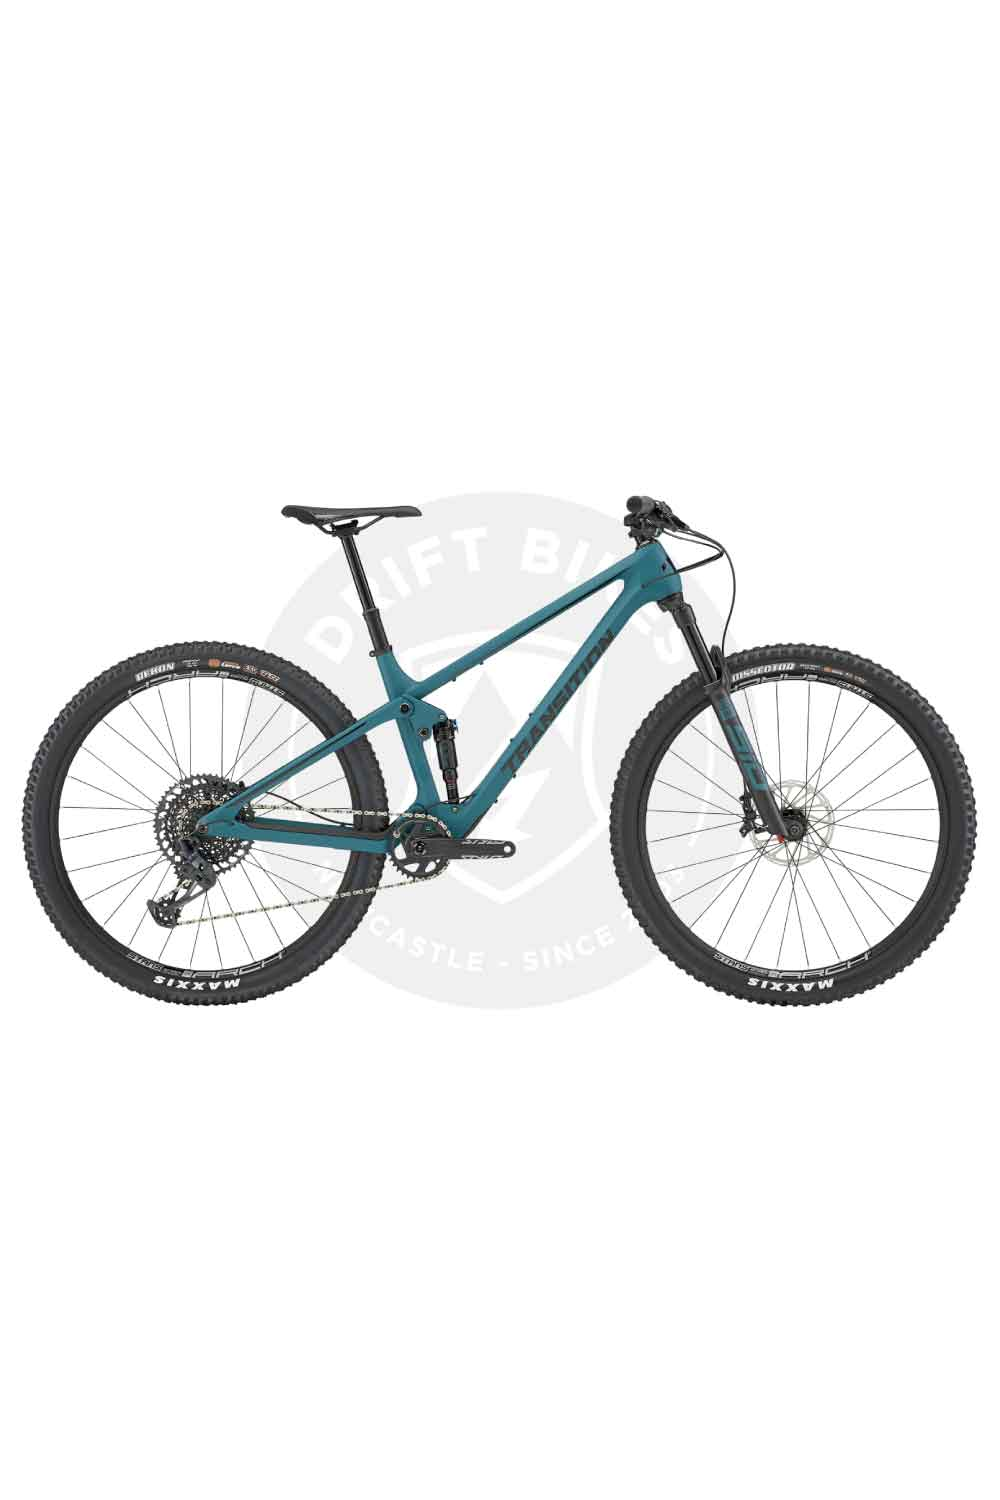 Transition SPUR Carbon GX MTB